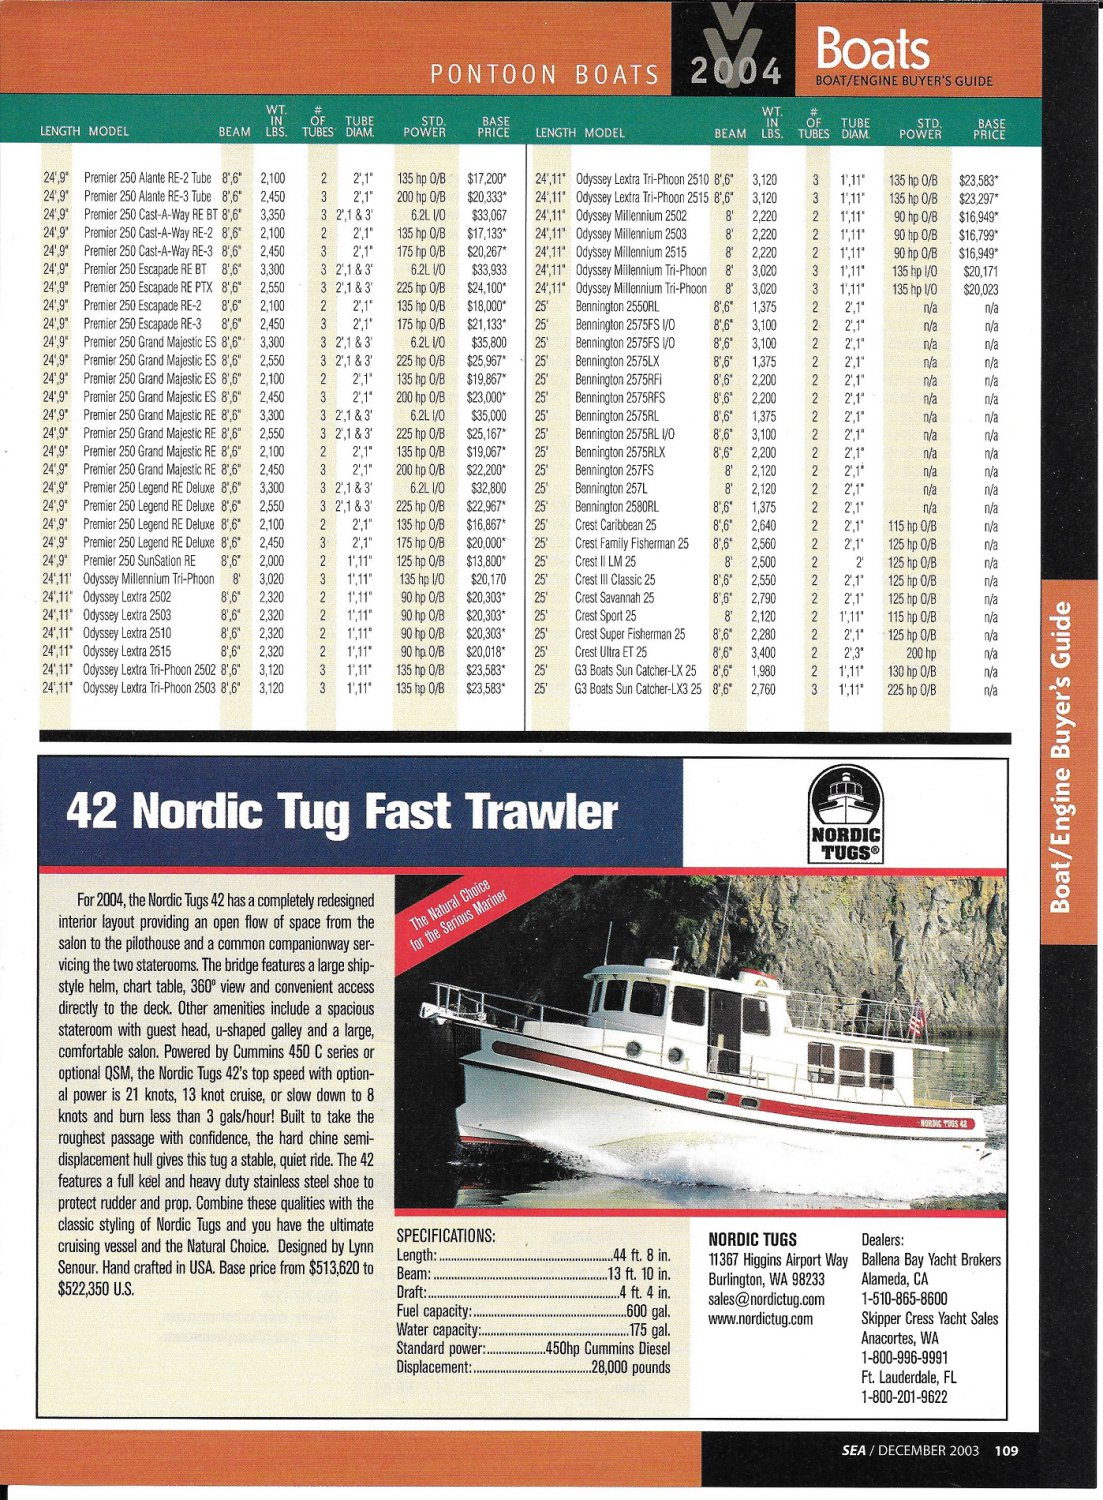 2004 Nordic Tug 42 Fast Trawler Review & Specs- Nice Photo